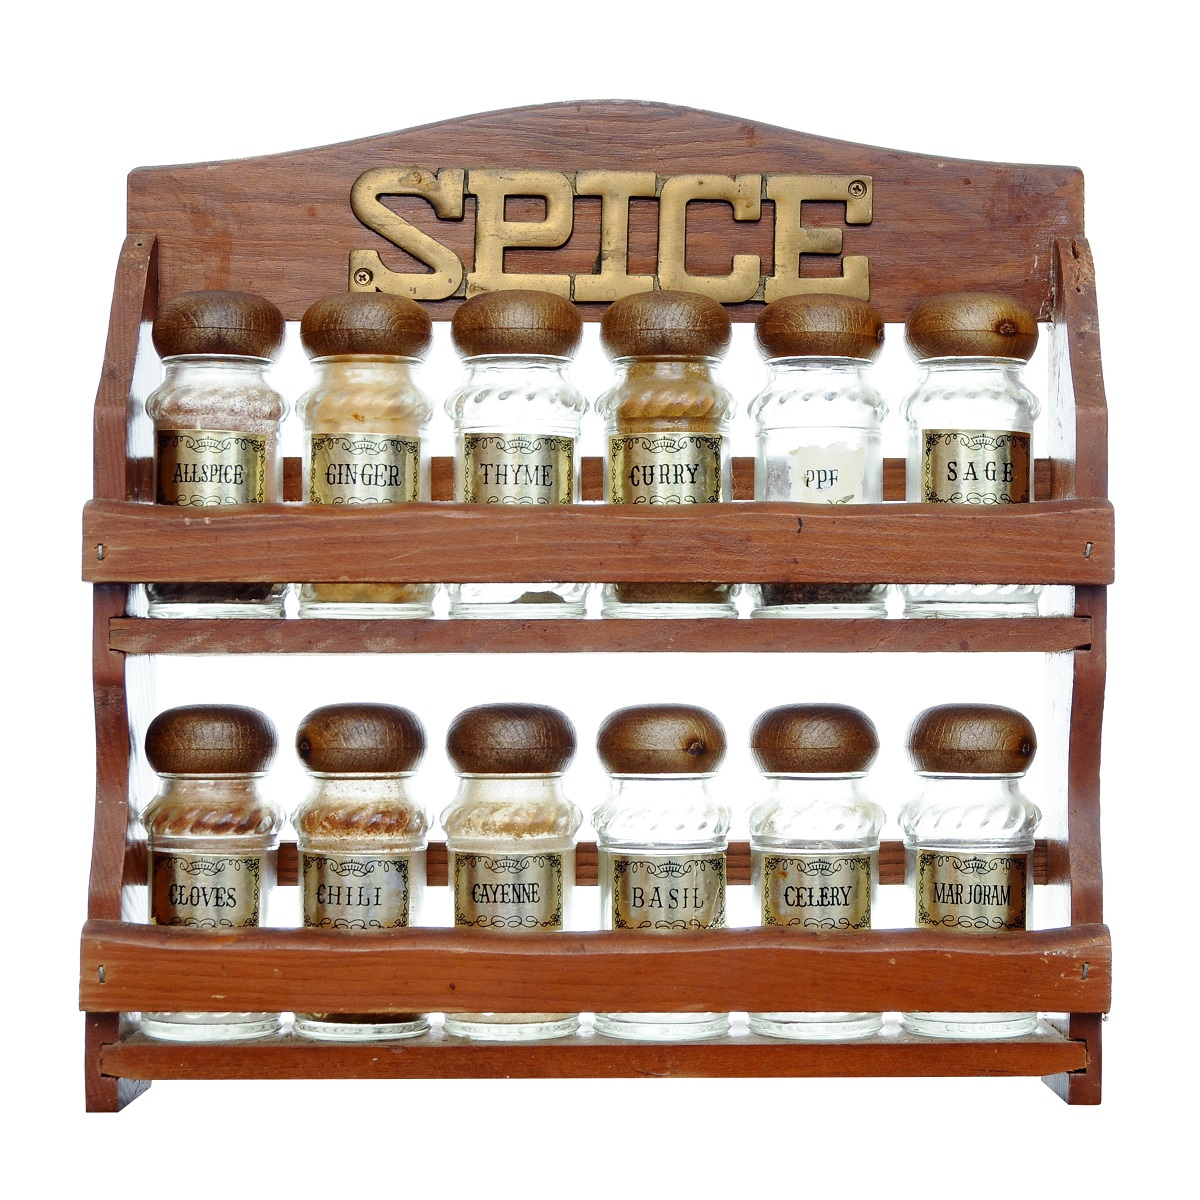 An old wooden spice rack isolated on white background